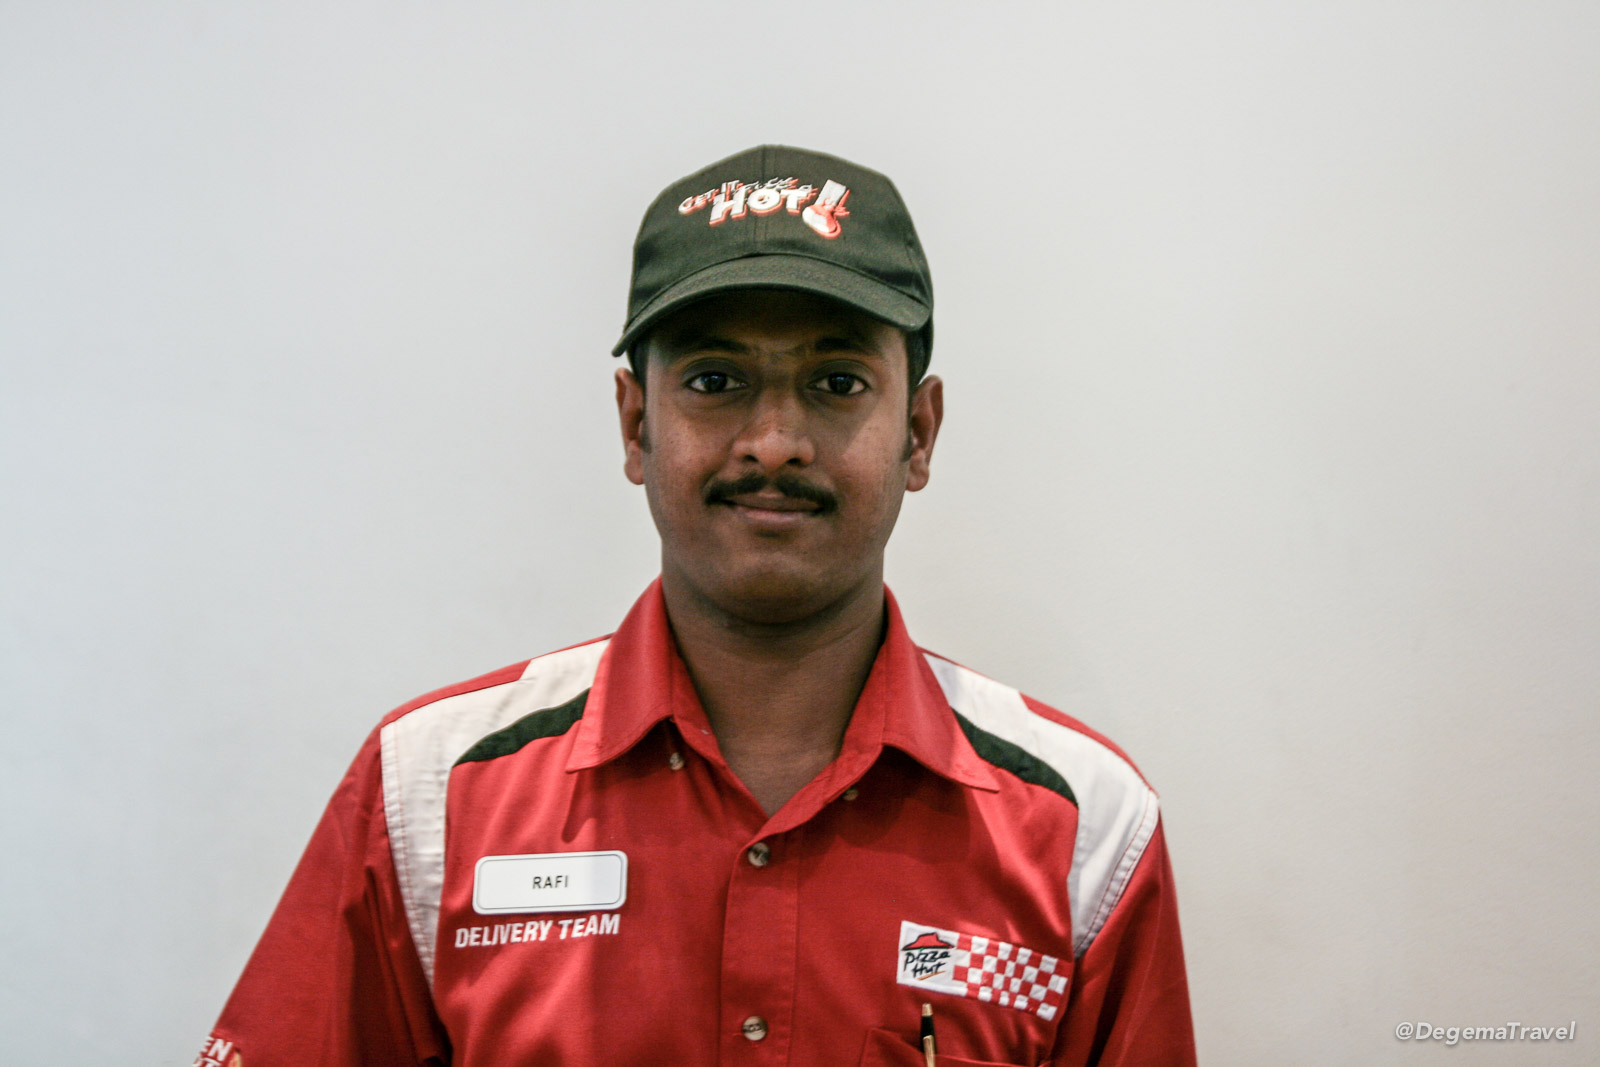 Pizza Hut delivery guy in Muscat, Oman